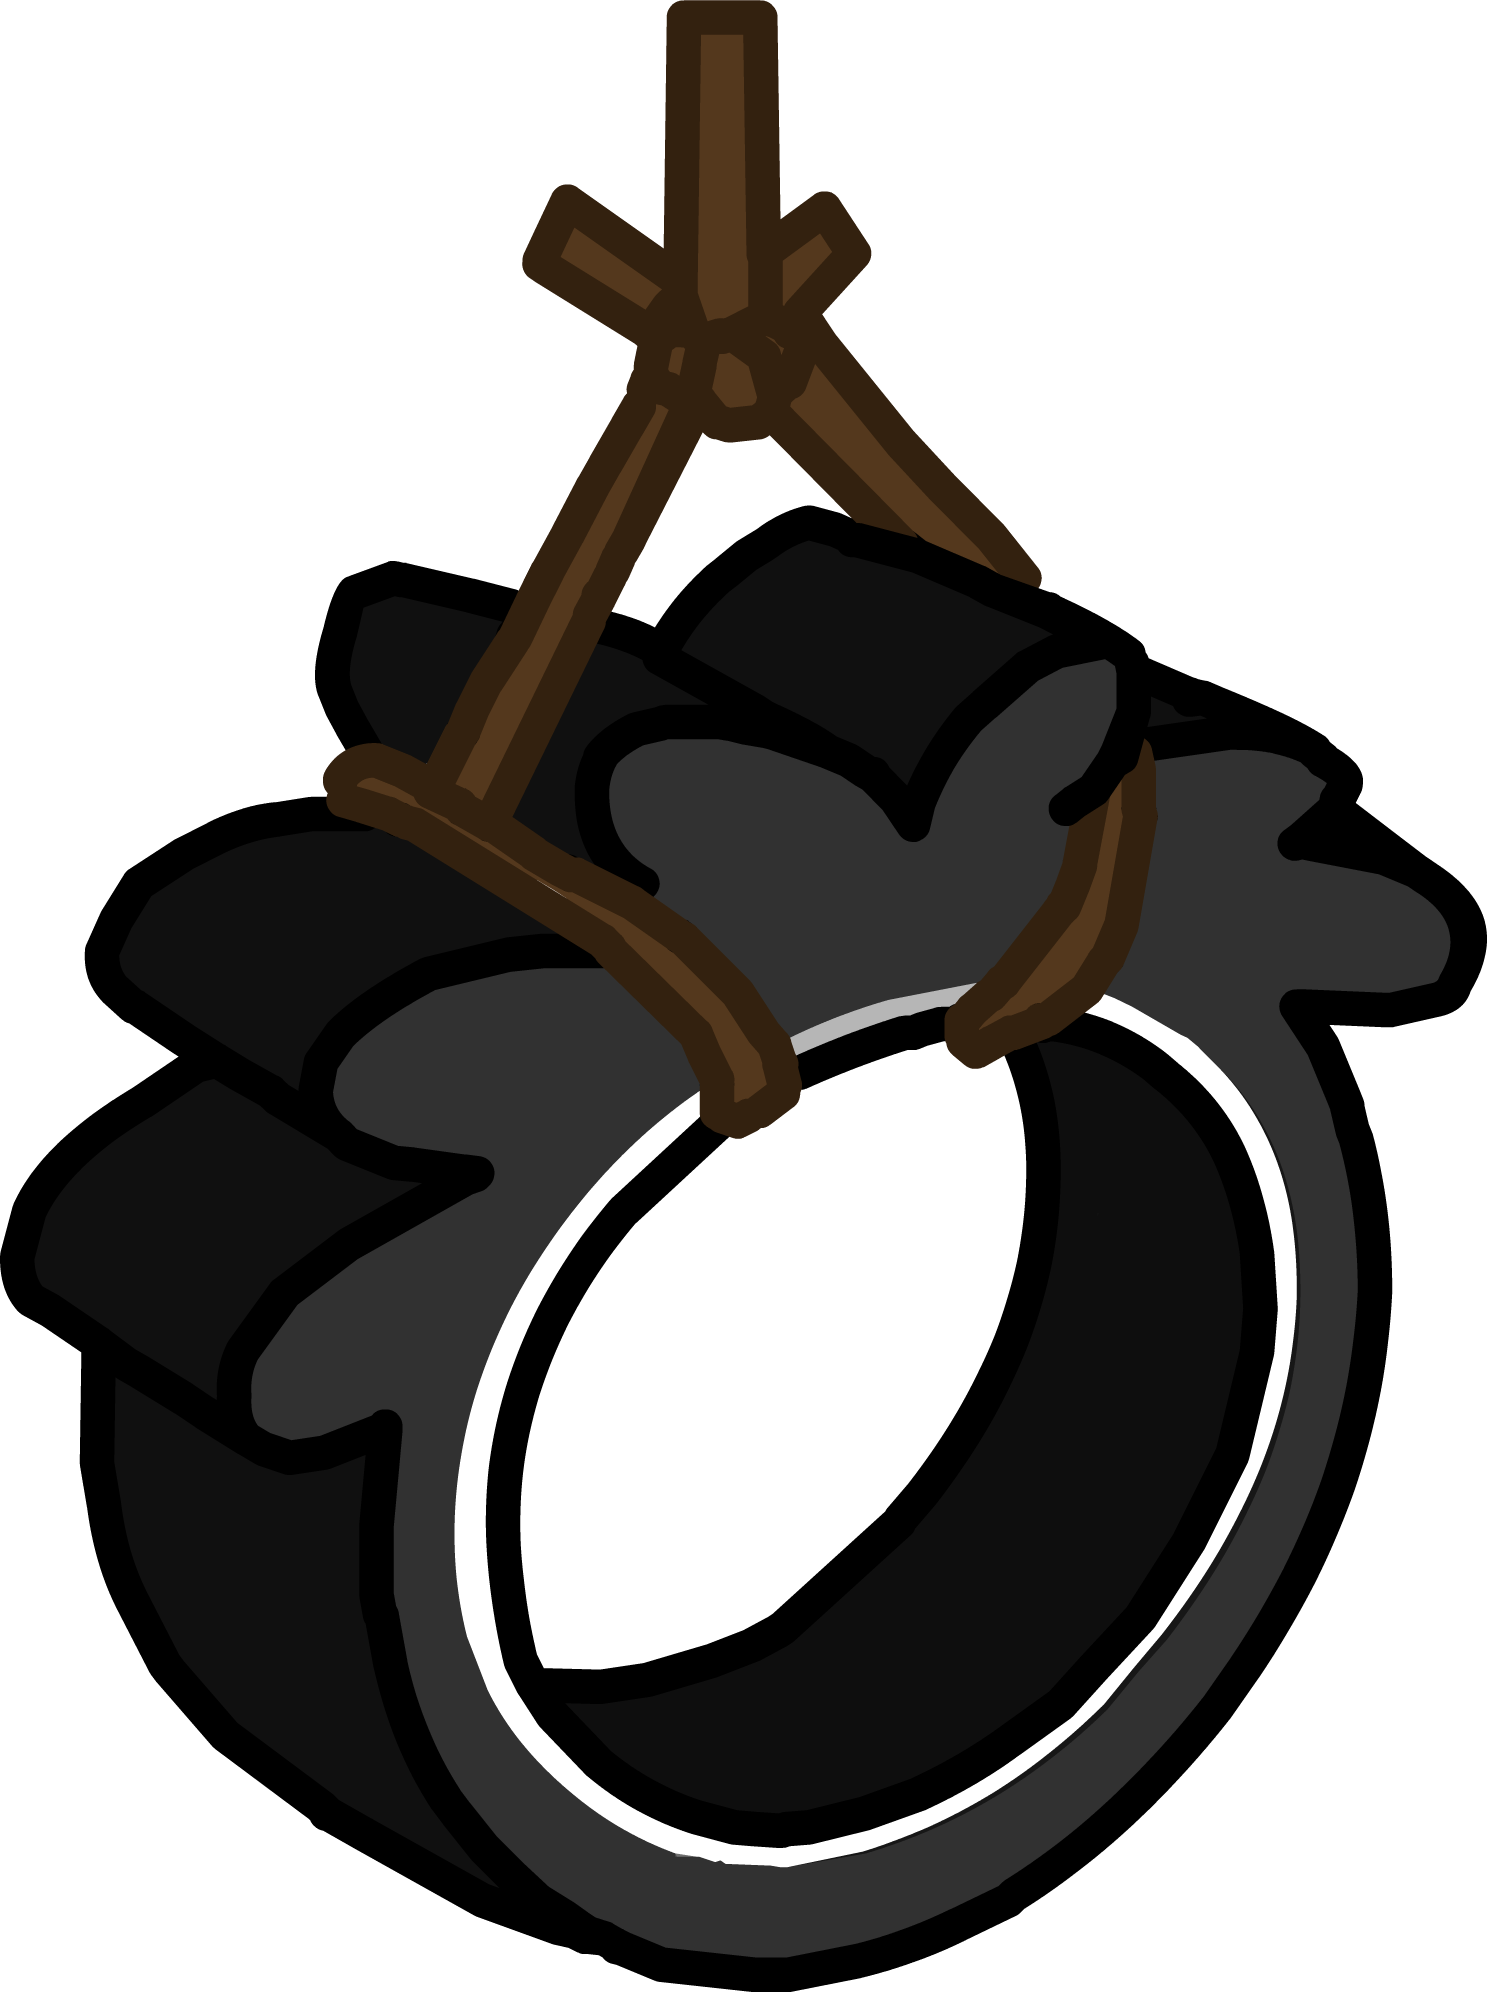 Tree with tire swing clipart graphic library stock Puffle Tire Swing | Club Penguin Wiki | FANDOM powered by Wikia graphic library stock